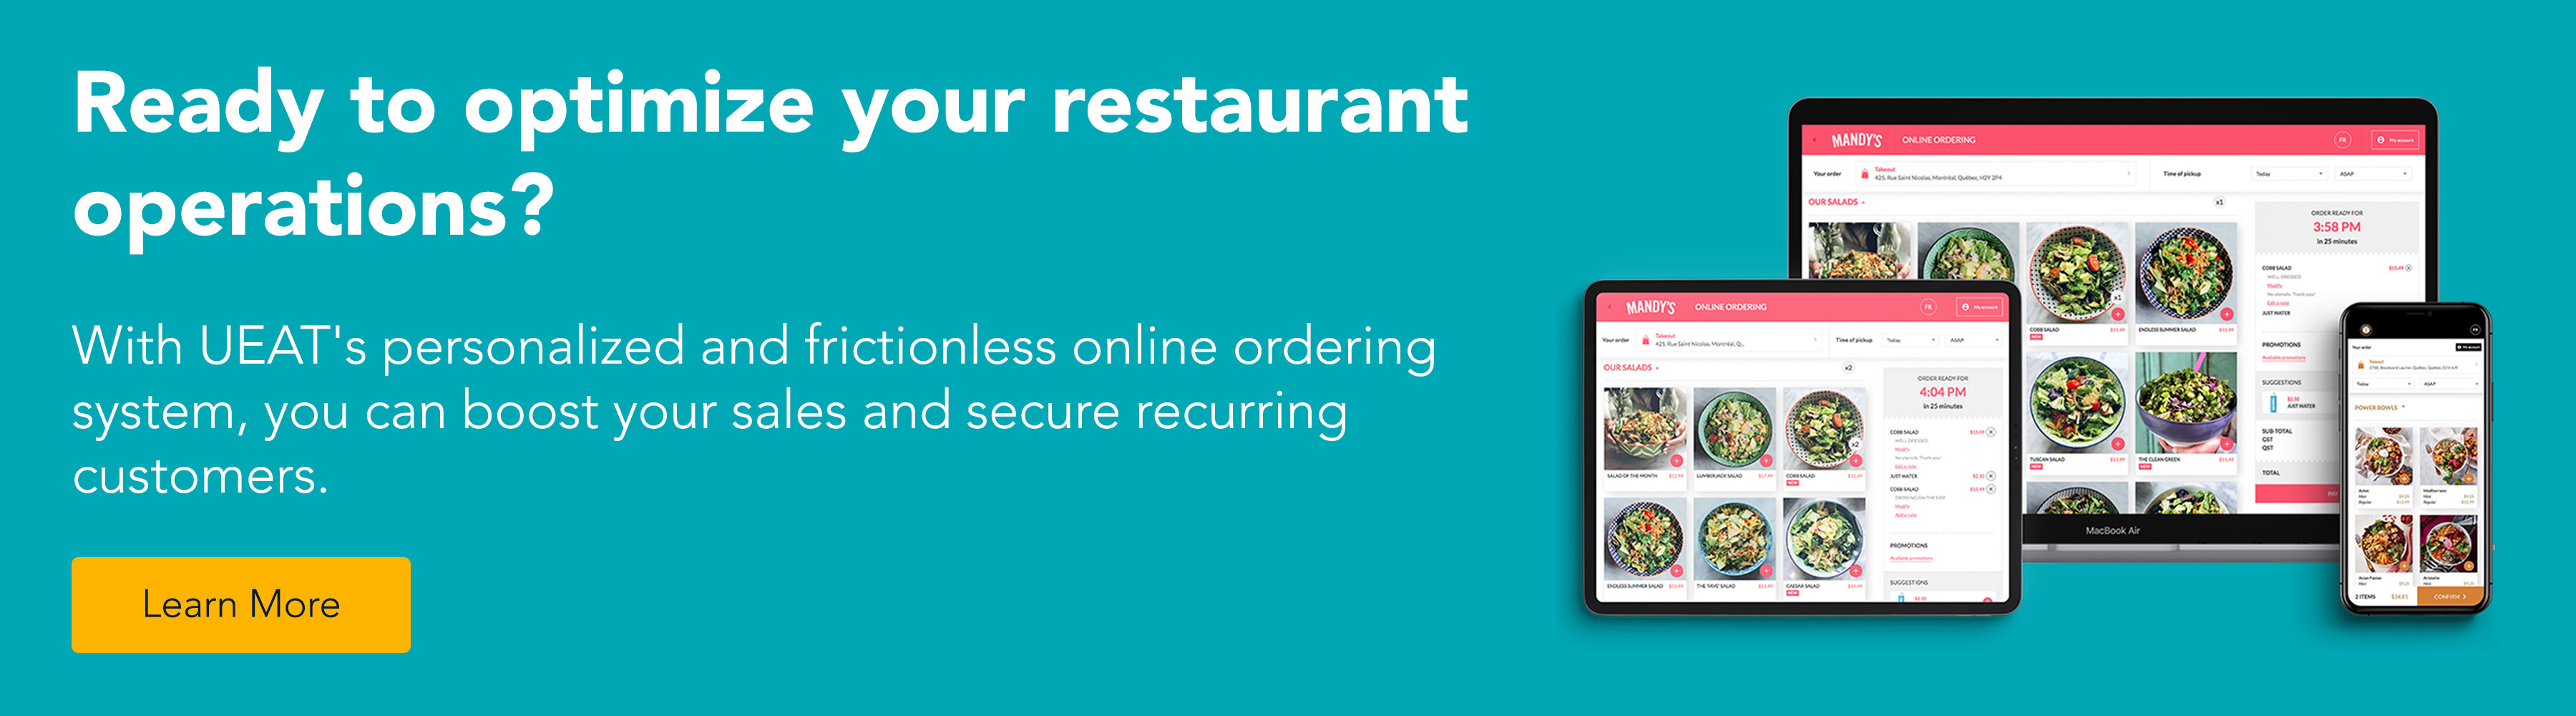 Ready to optimize your restaurant operations? With UEAT's personalized and frictionless online ordering system, you can boost your sales and secure recurring customers. Learn More.